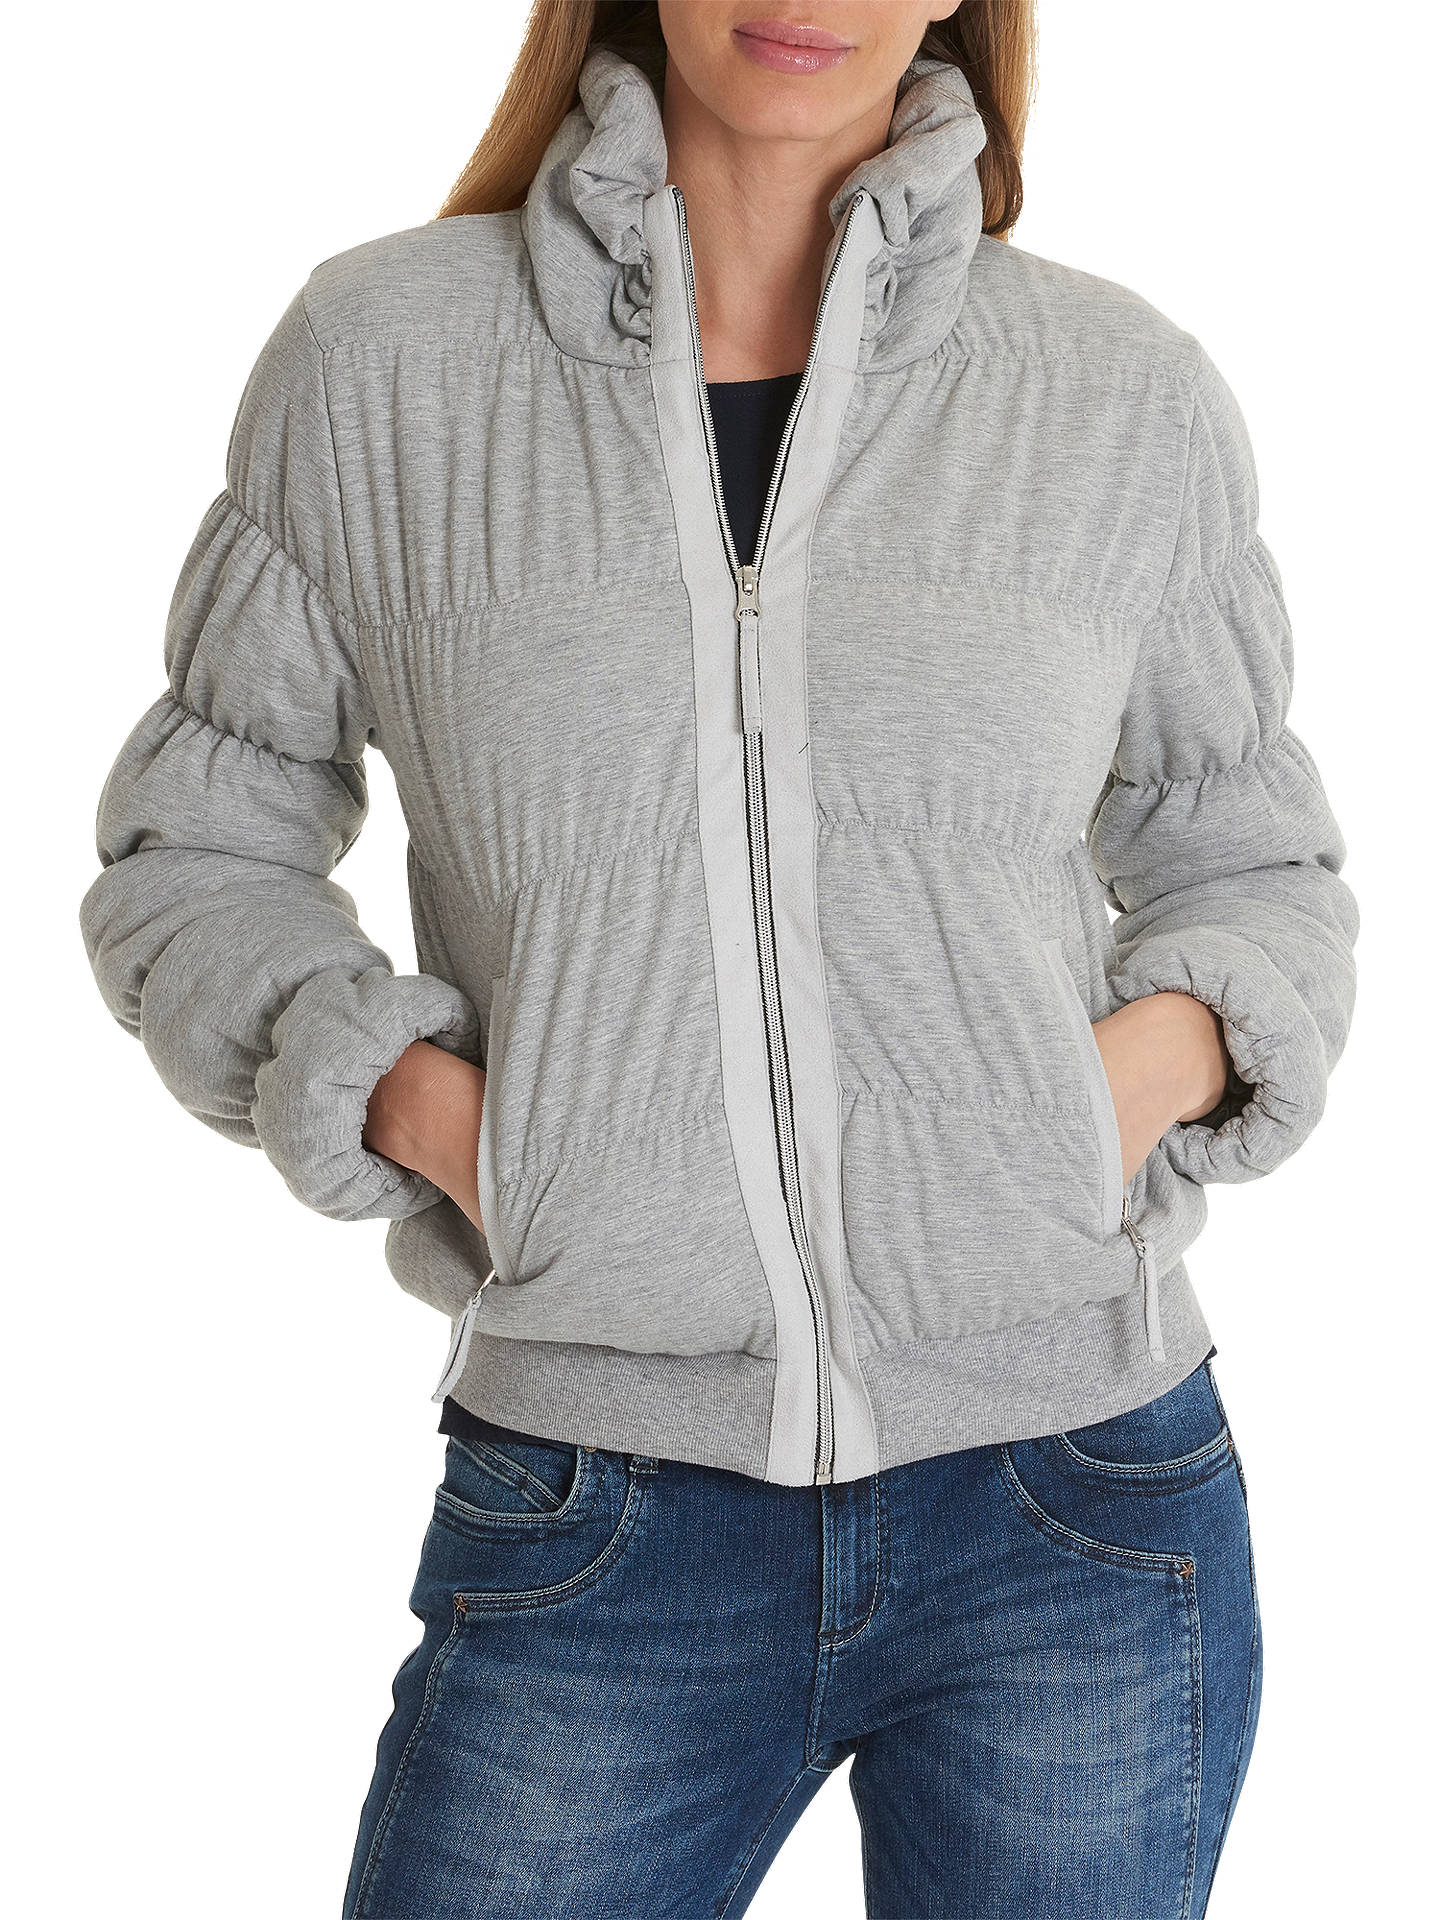 BuyBetty Barclay Padded Jacket, Light Silver Melange, 10 Online at johnlewis.com